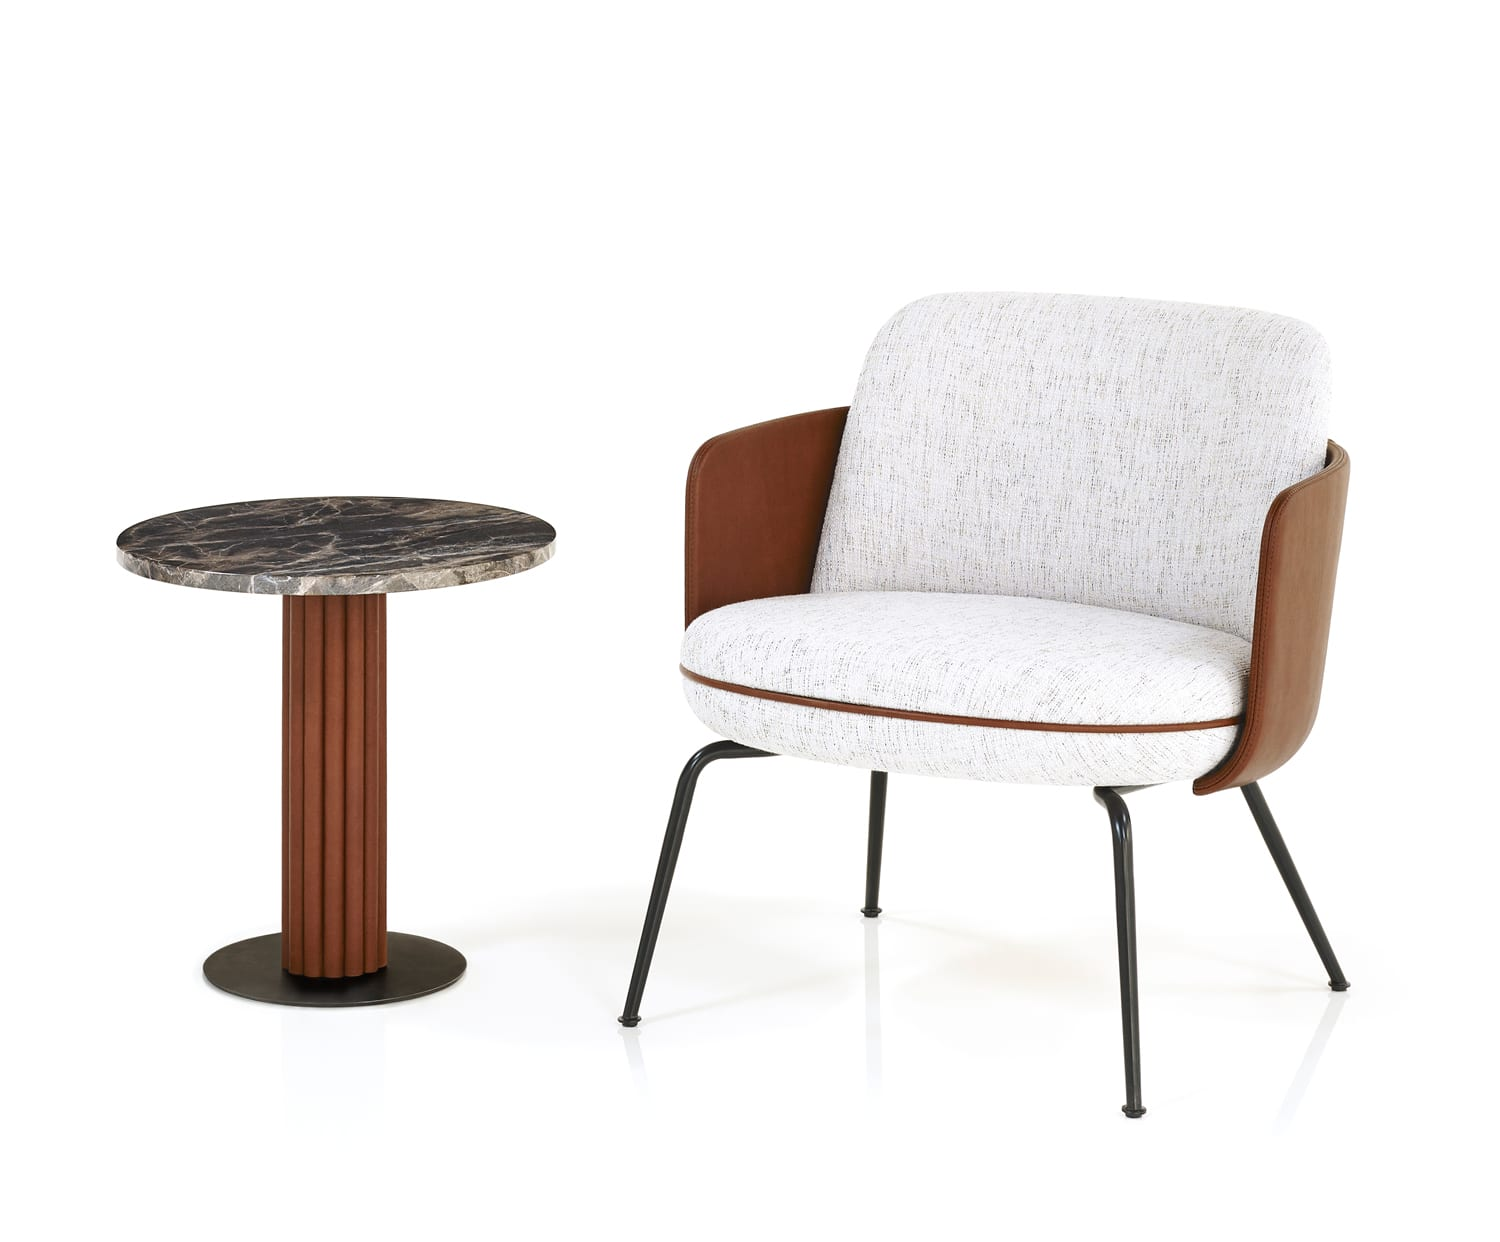 Merwyn Lounge Chair & Miles Side Table by Sebastian Herkner for Wittmann at Imm Cologne 2019   Yellowtrace